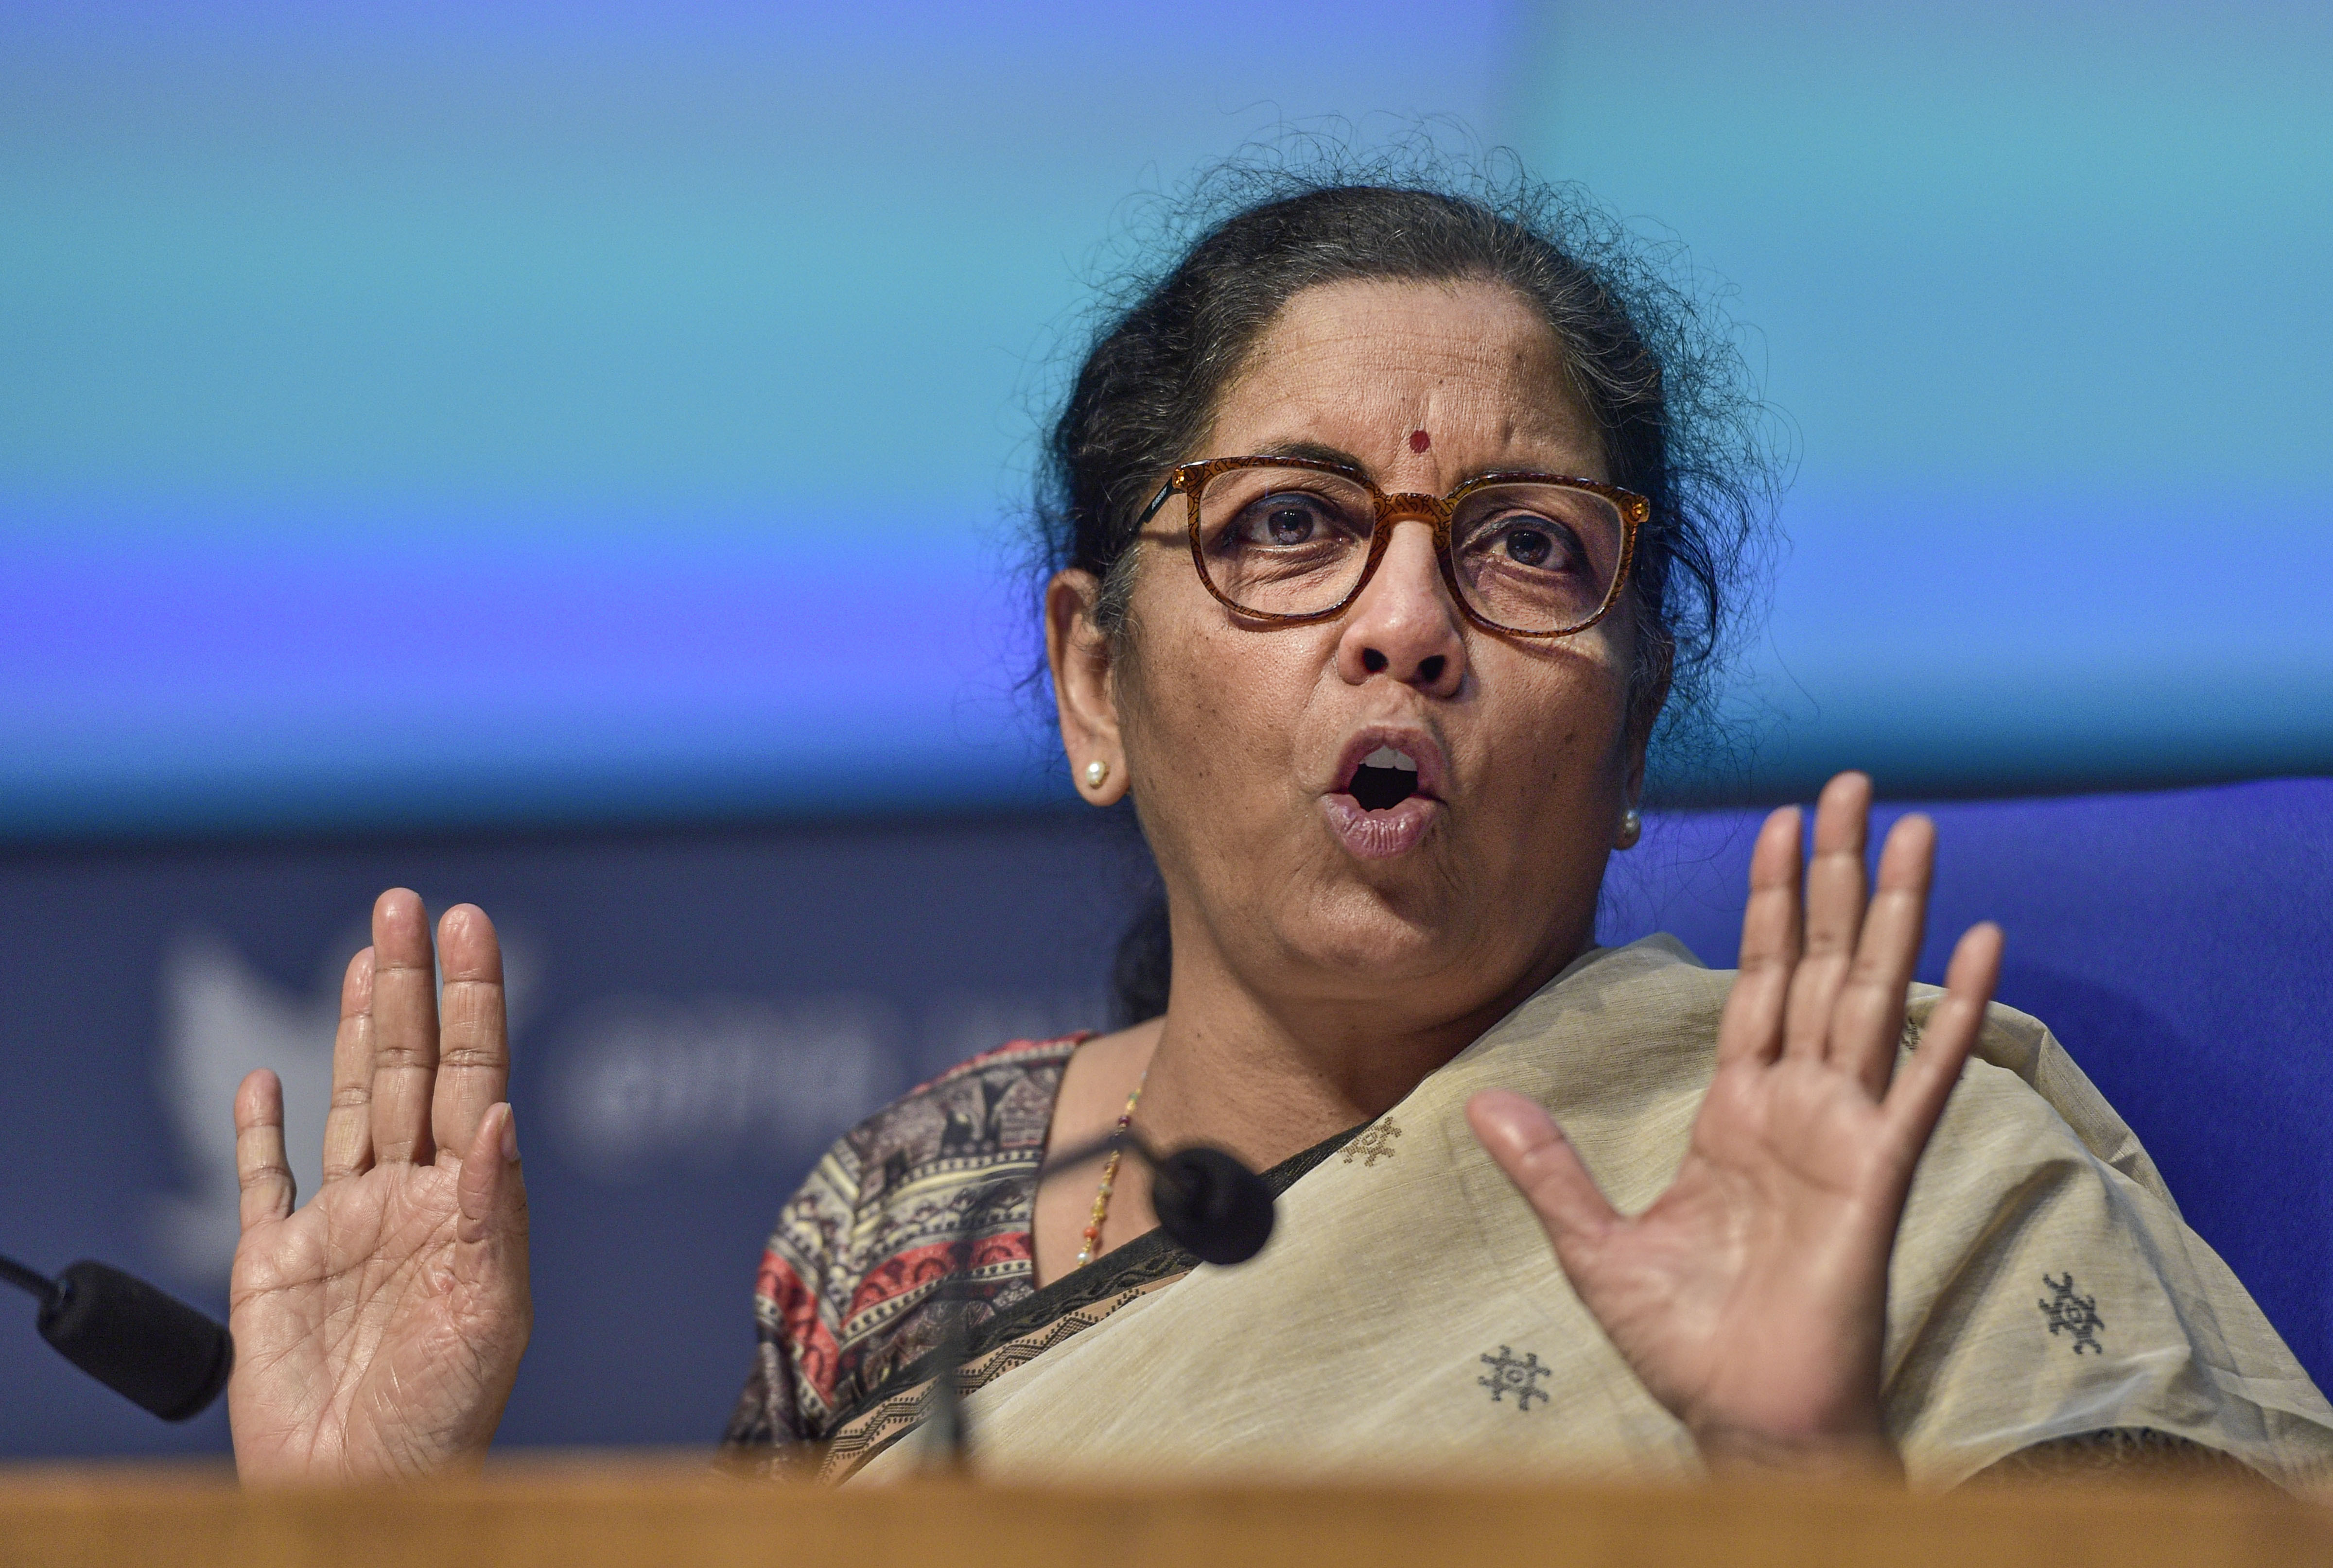 Union Finance Minister Nirmala Sitharaman addresses the fourth part of her press conference on the economic stimulus package announced by Prime Minister Narendra Modi, at the National Media Centre, in New Delhi, Saturday, May 16, 2020.